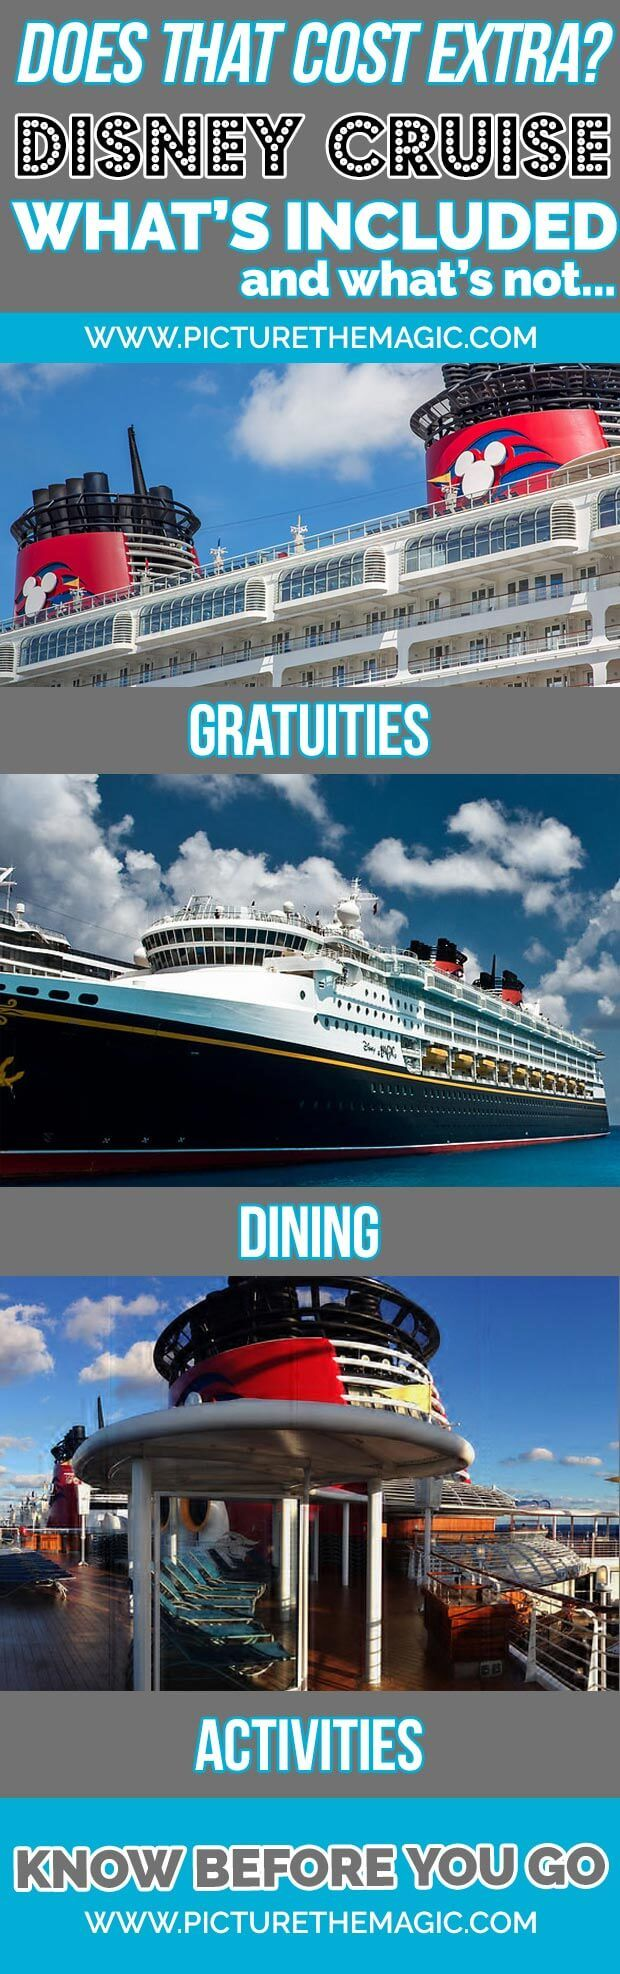 What's included in price of Disney Cruise?